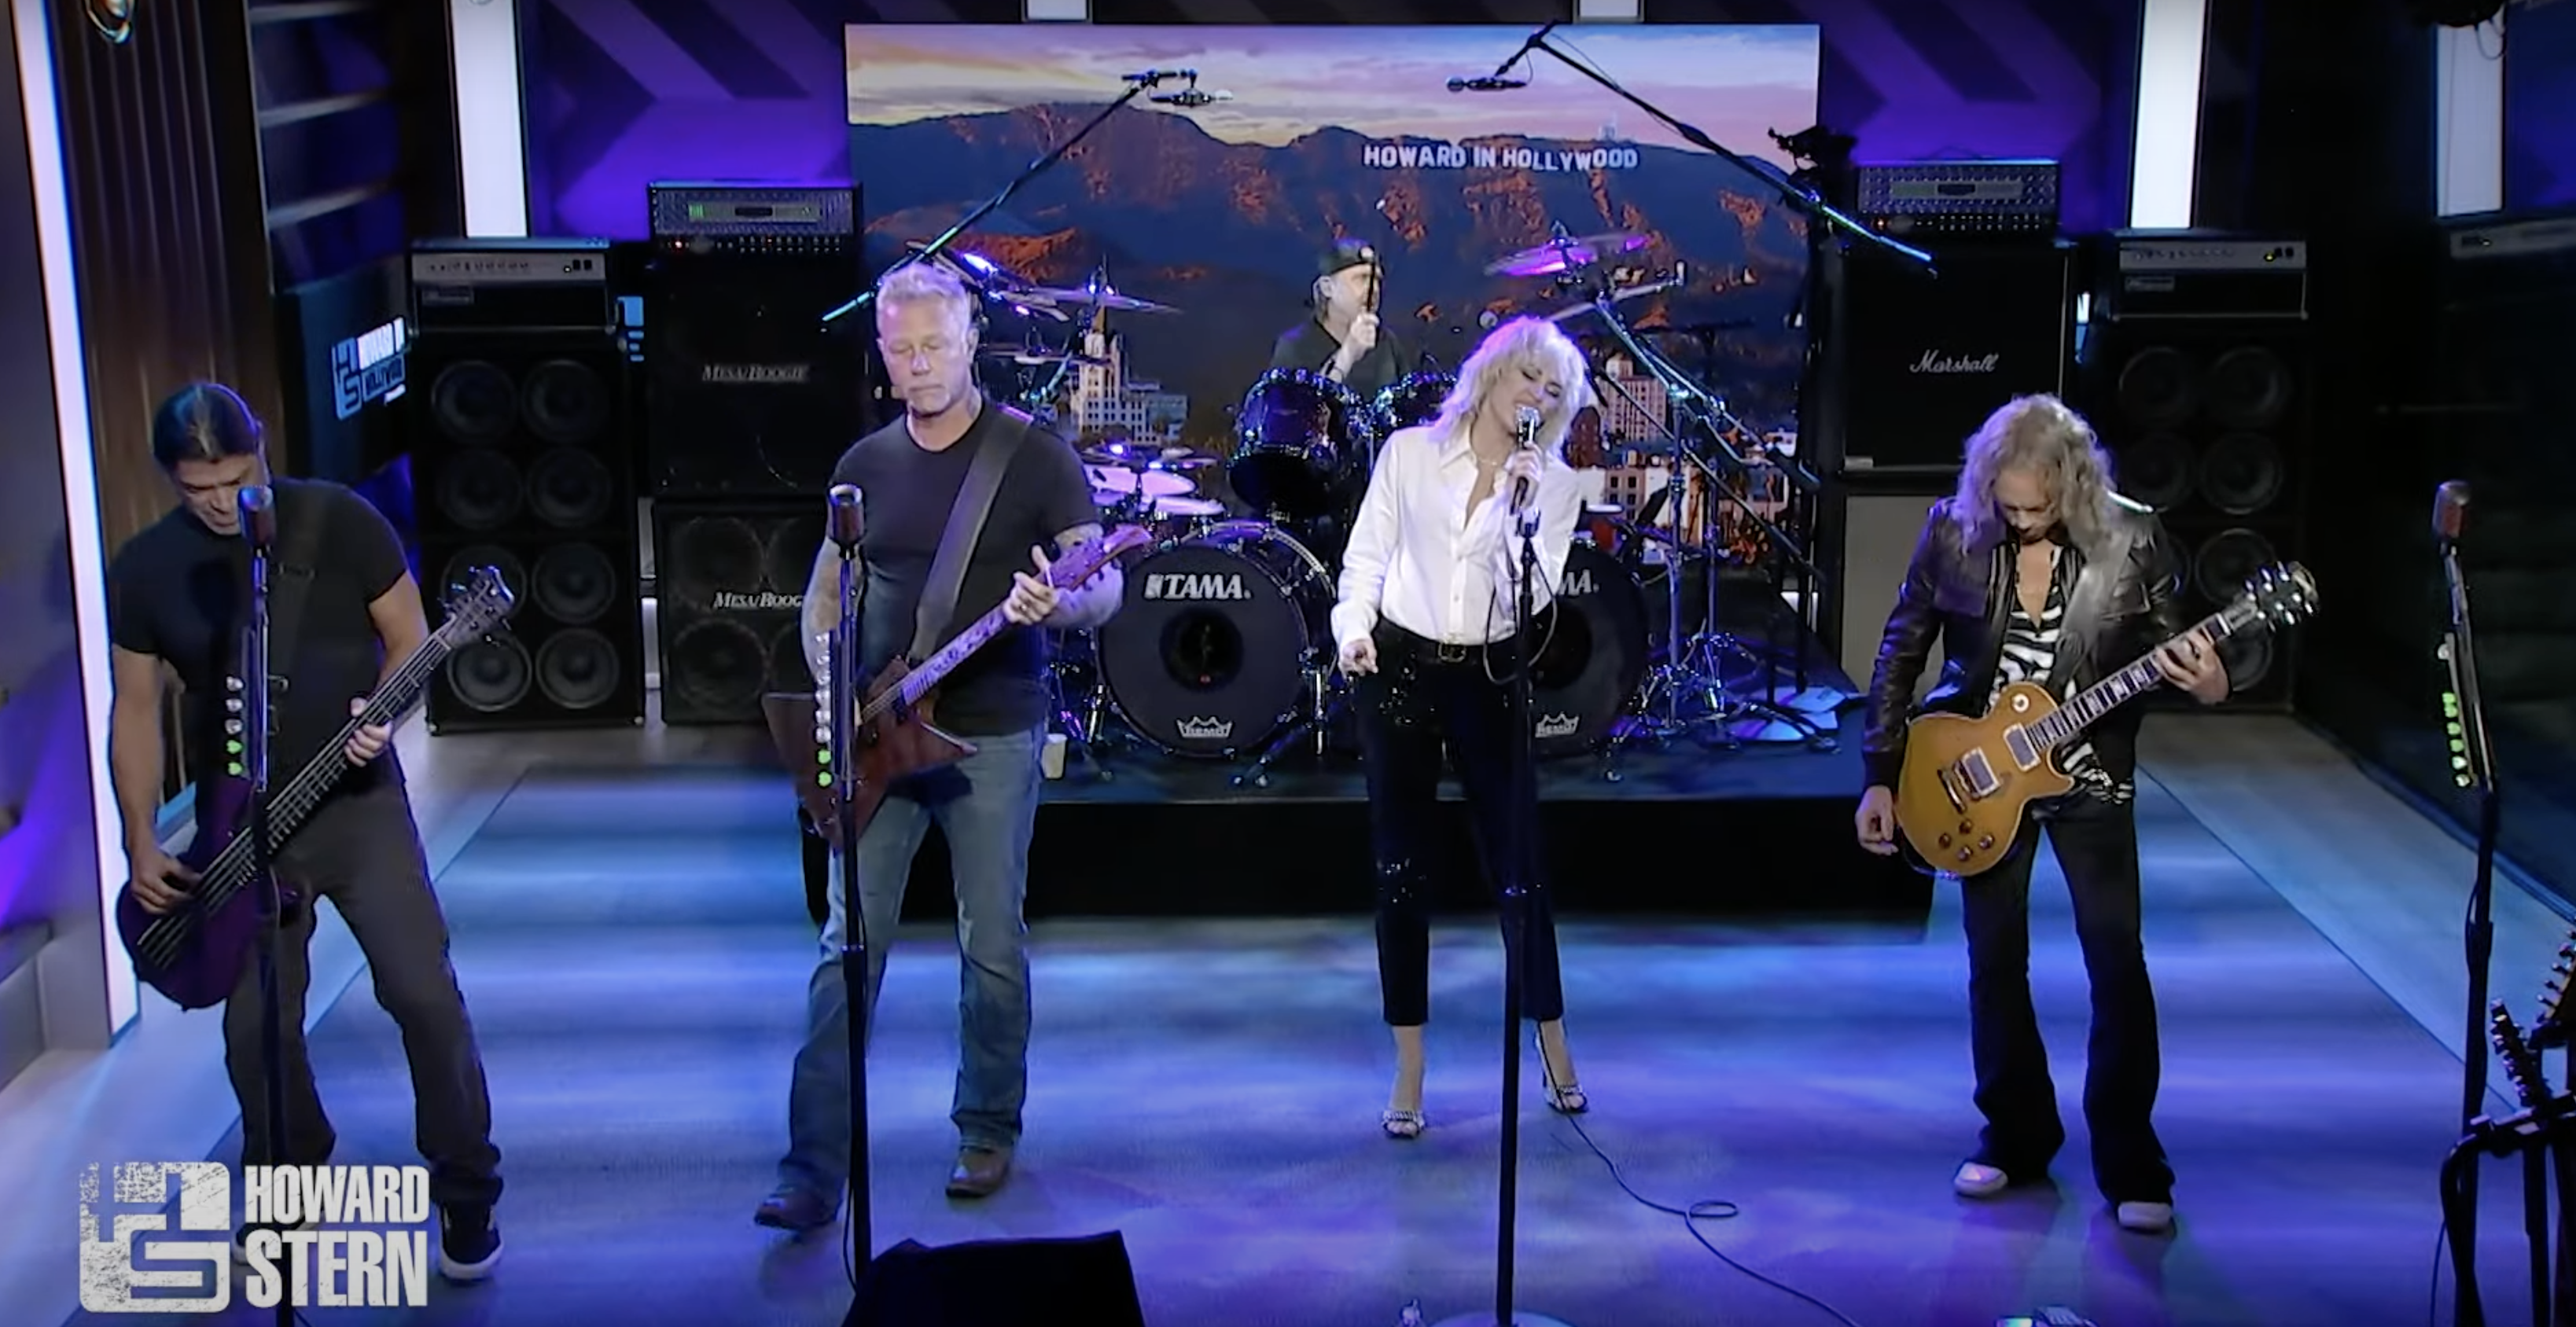 Watch Miley Cyrus Join Metallica for 'Nothing Else Matters' Performance